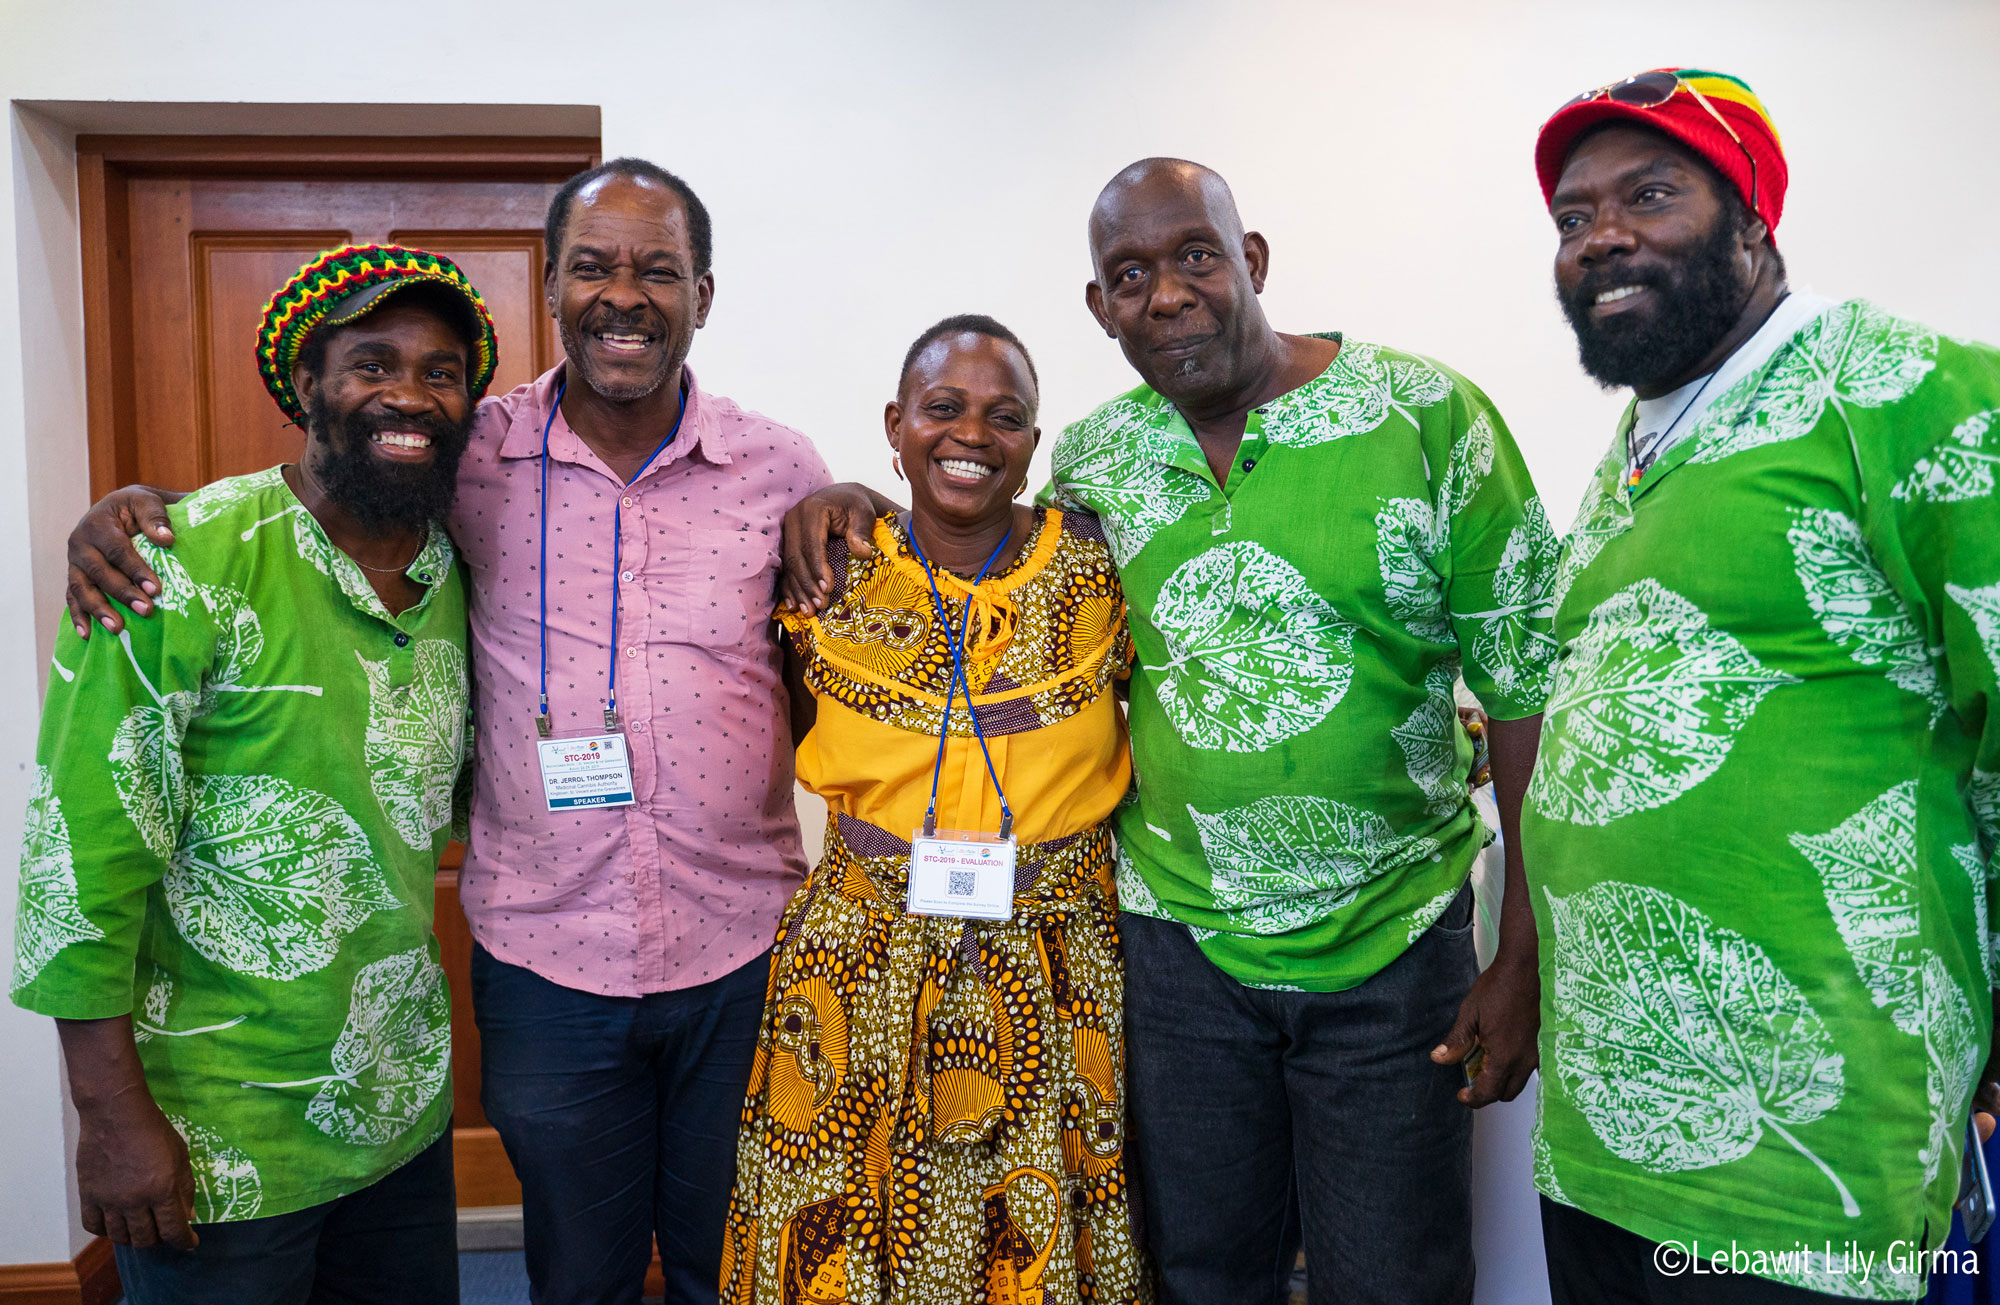 Five people in African print clothing